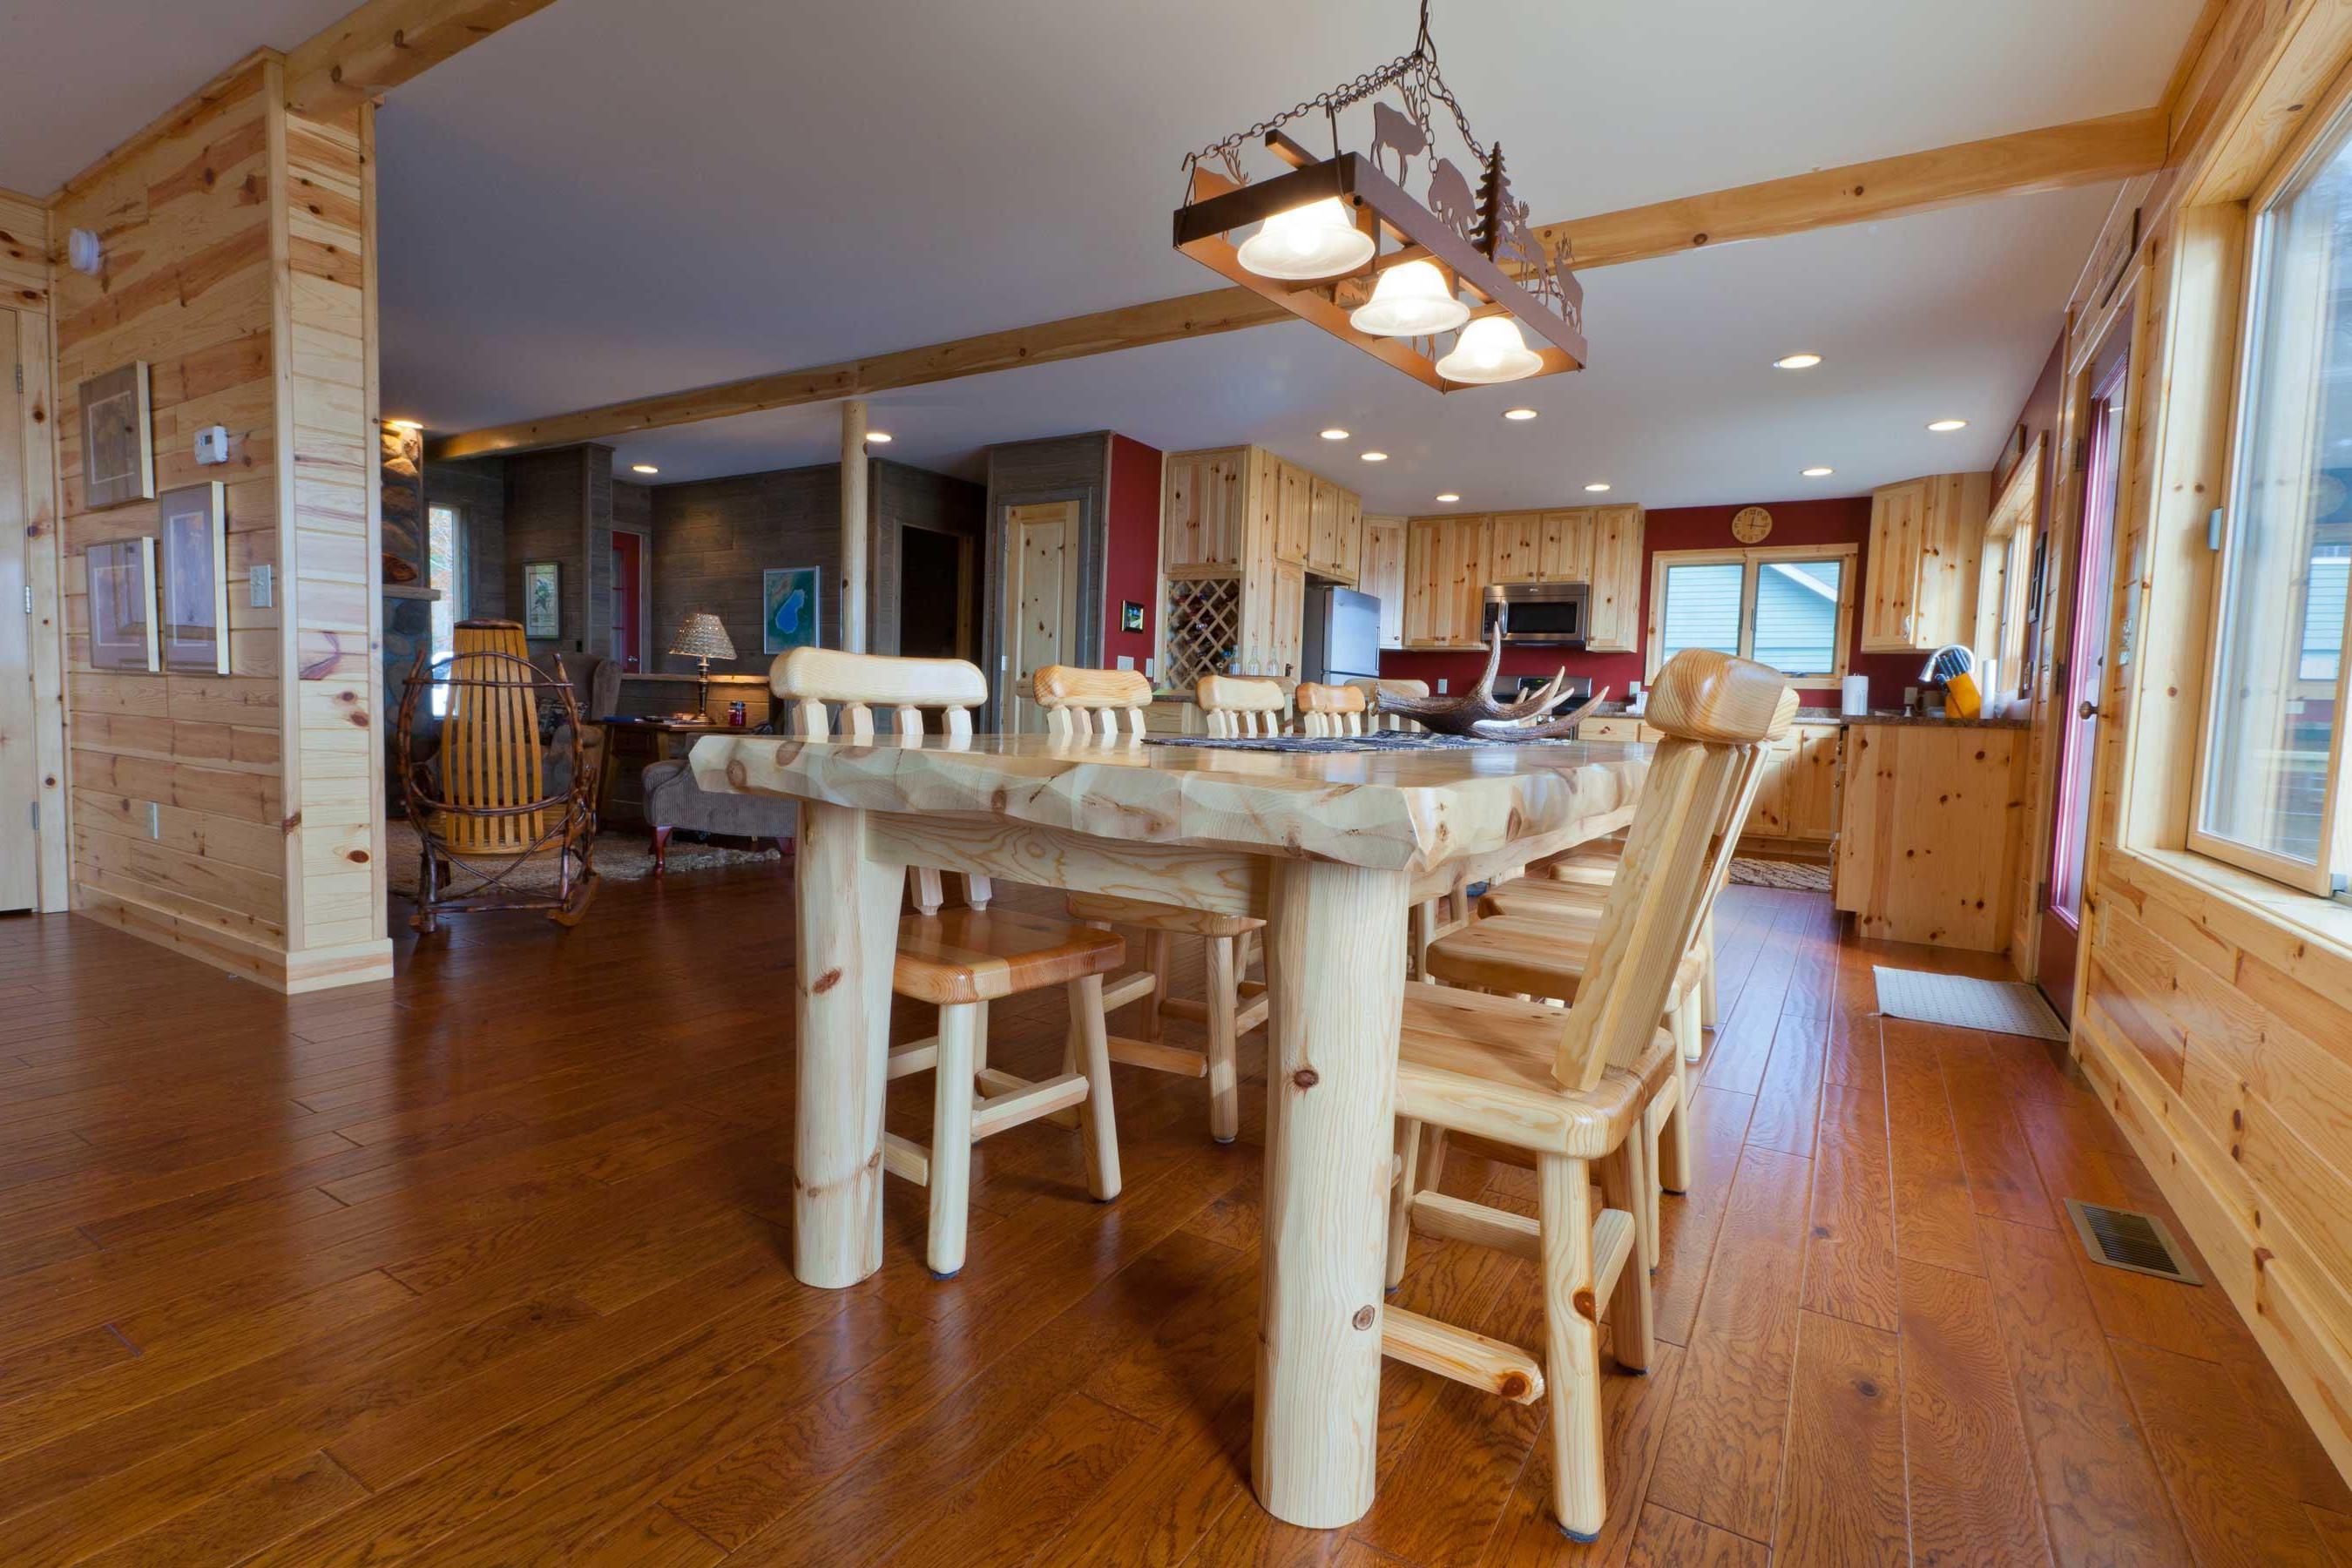 Knotty Pine Paneling House Design Style (Image 3 of 5)